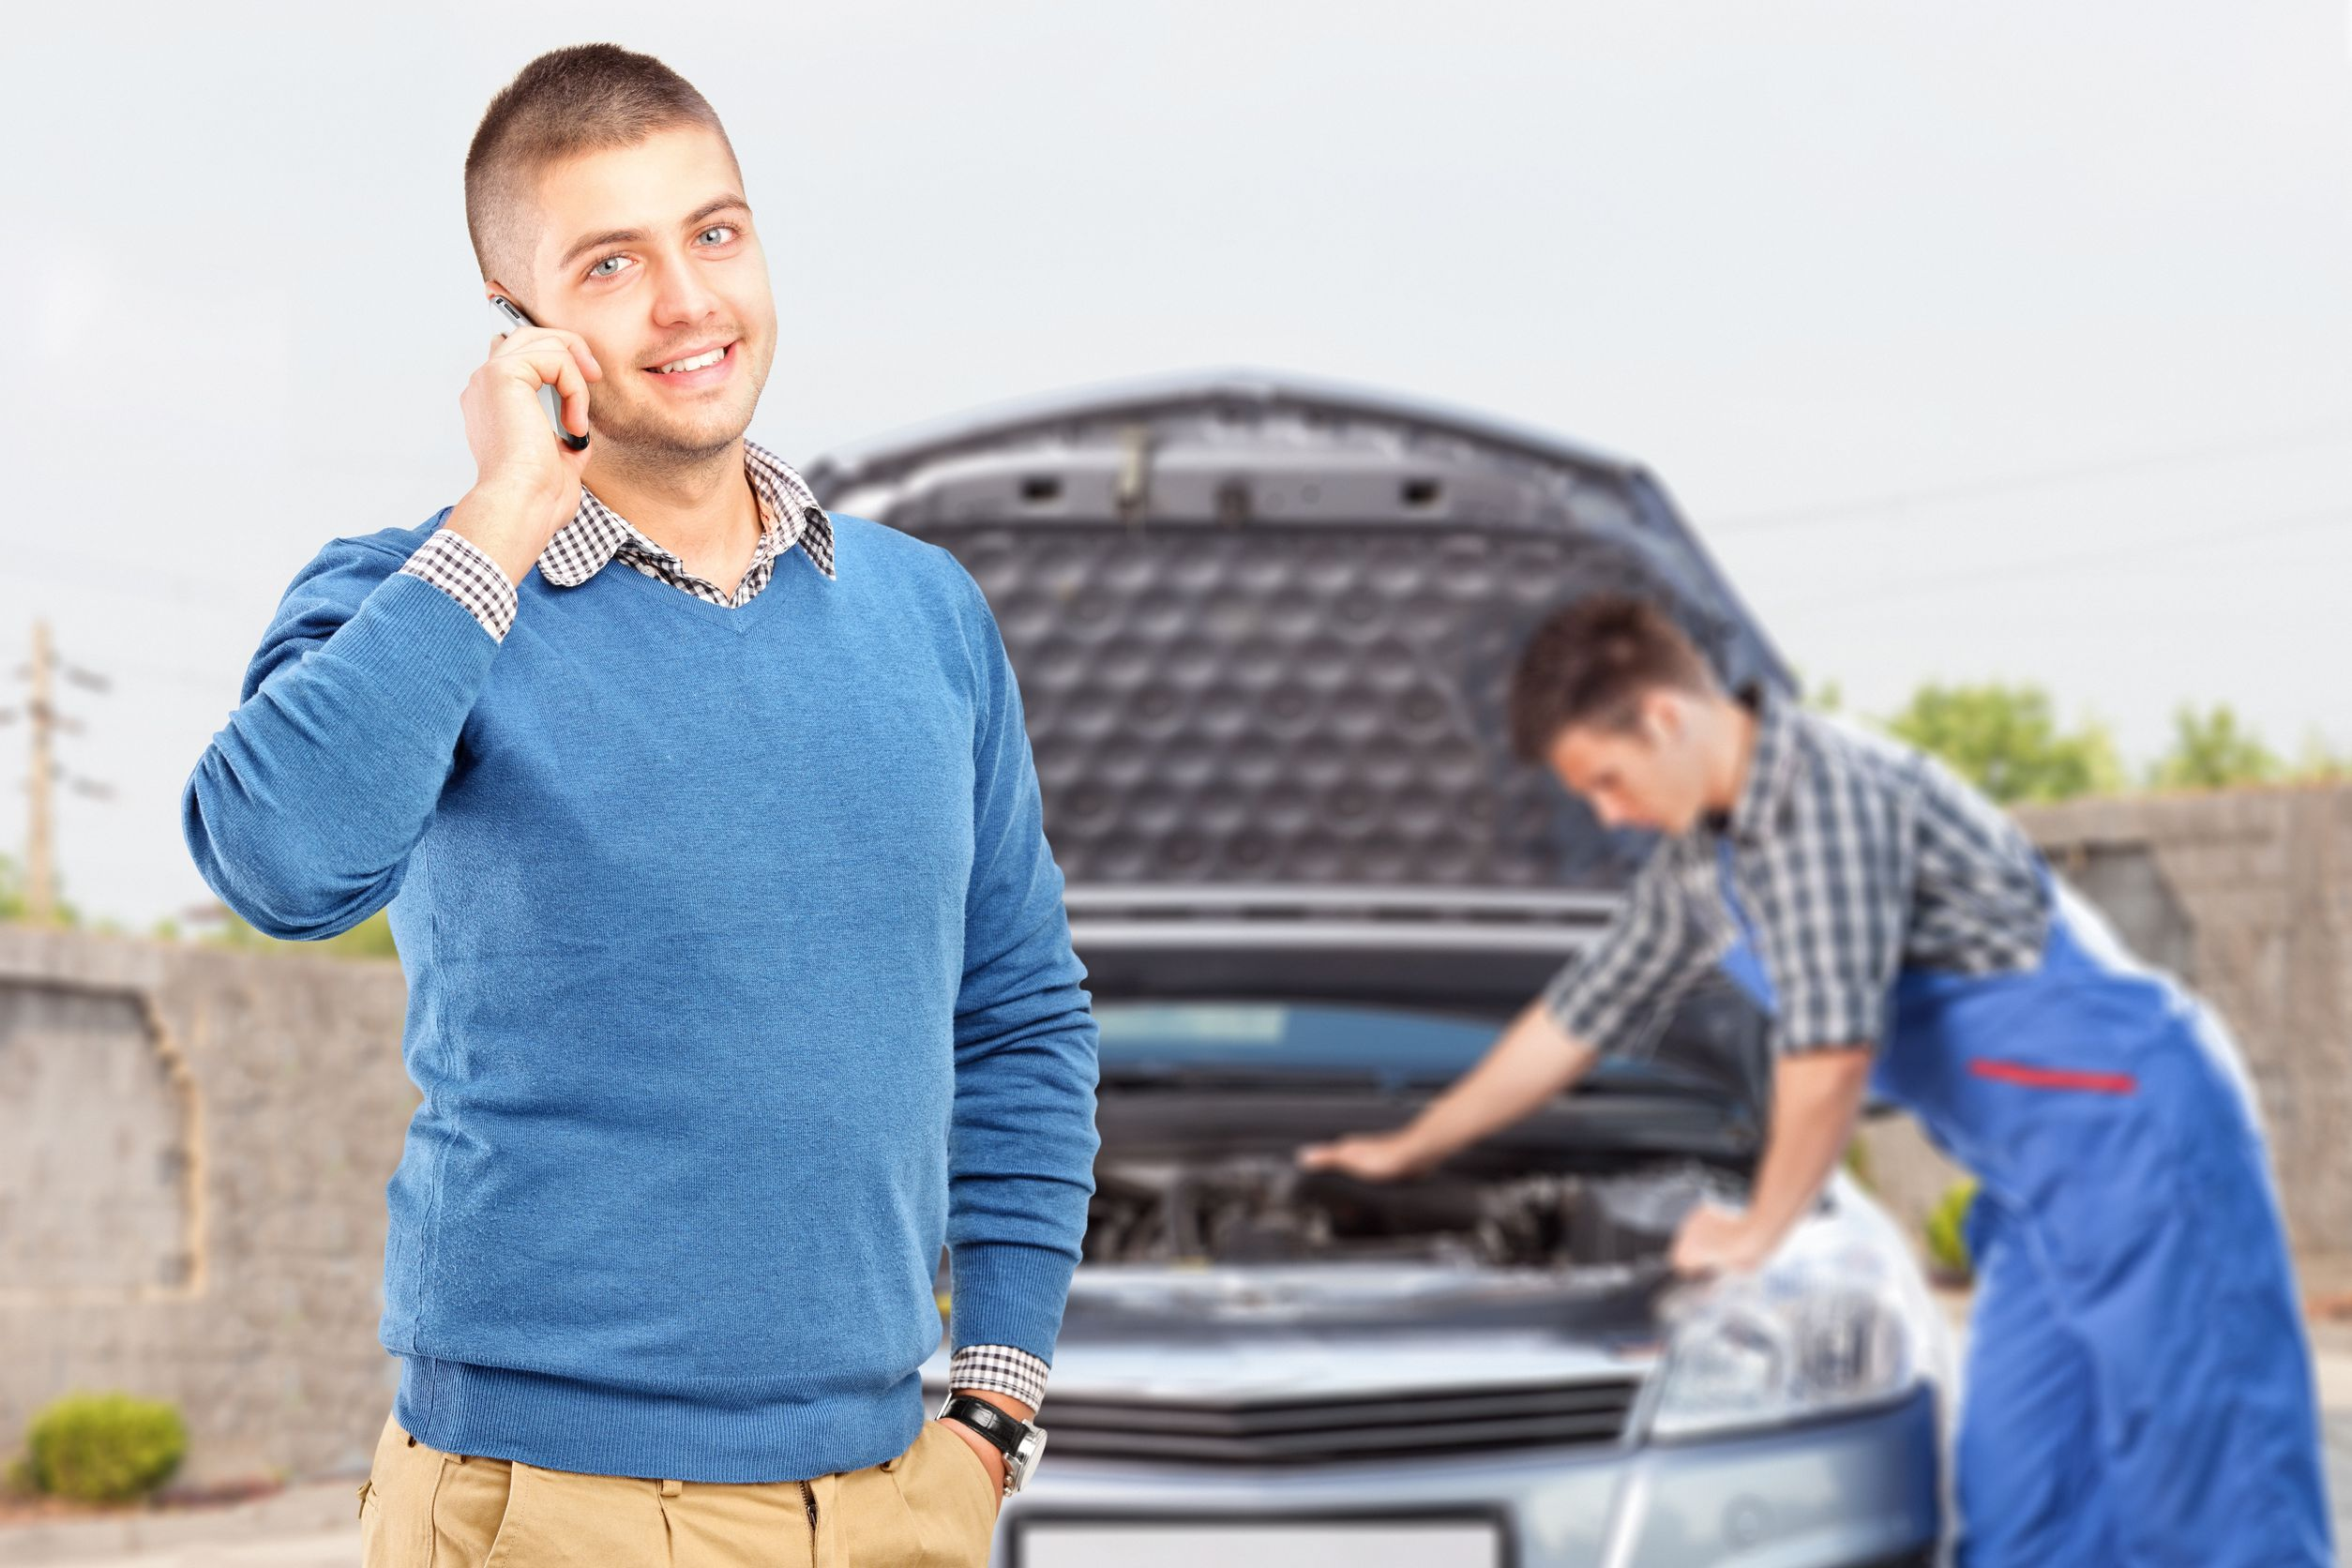 Mobile Mechanic Bexar County Texas 210-693-0830